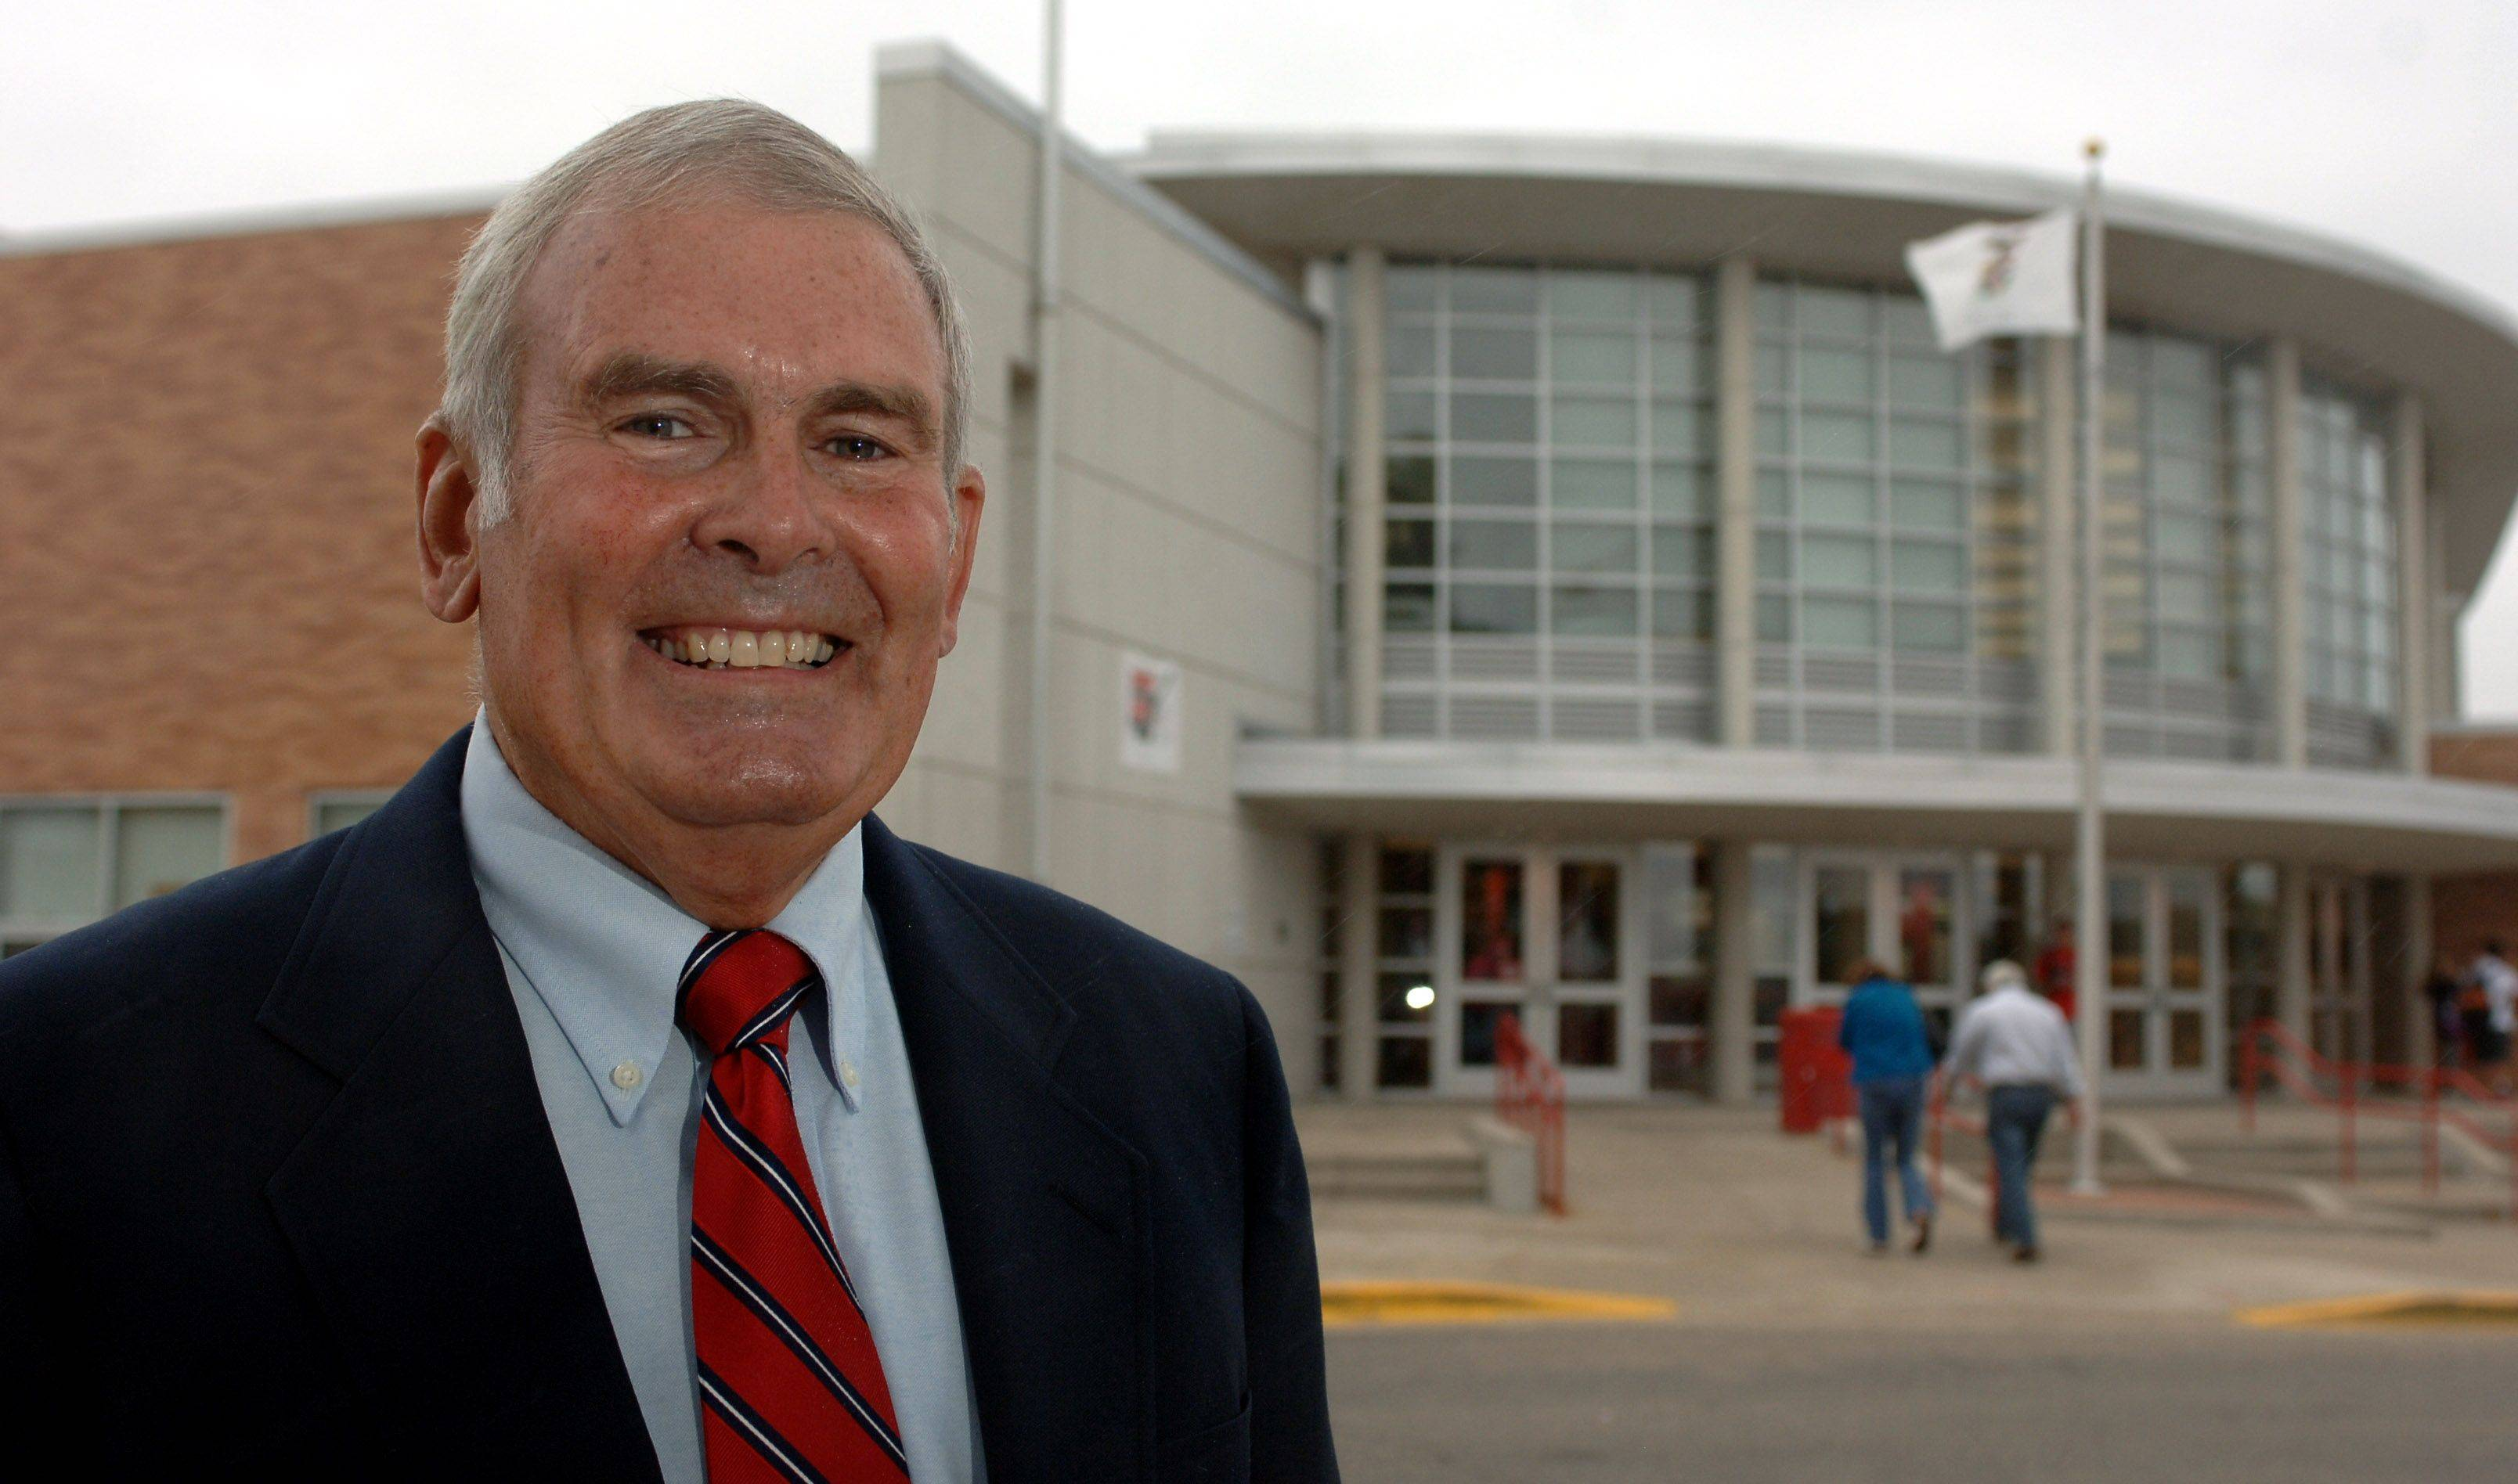 Mundelein High School is celebrating its 50th anniversary this weekend. The school's first class president, Brian Thatcher, will be grand marshal of the homecoming parade.